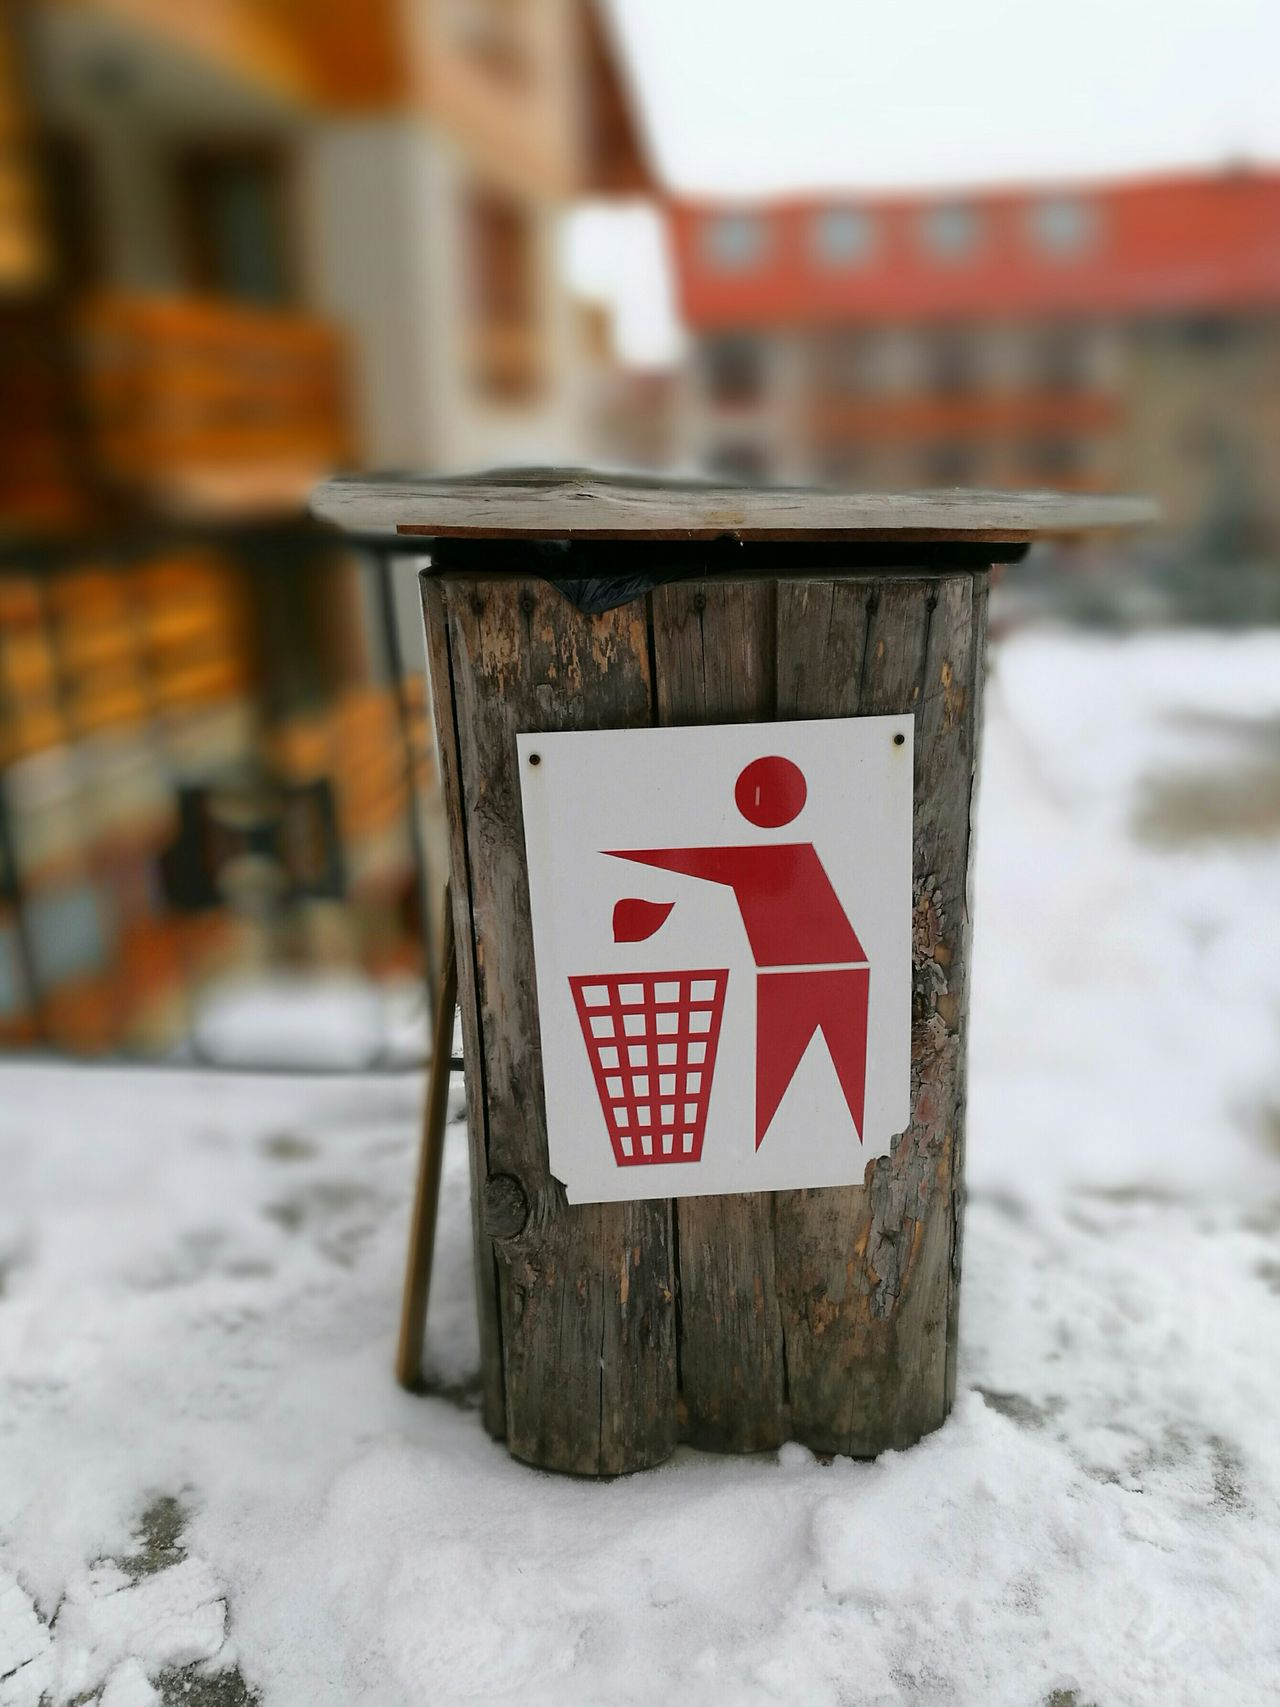 No People Winter Close-up Outdoors Focus On Foreground Snow Day Snowy Snow Covered Snow ❄ Environment Outside Outdoor Photography Nature Wintertime Outdoor Pictures Goodvibes Text Architecture Cold Temperature Garbage Bin Garbage